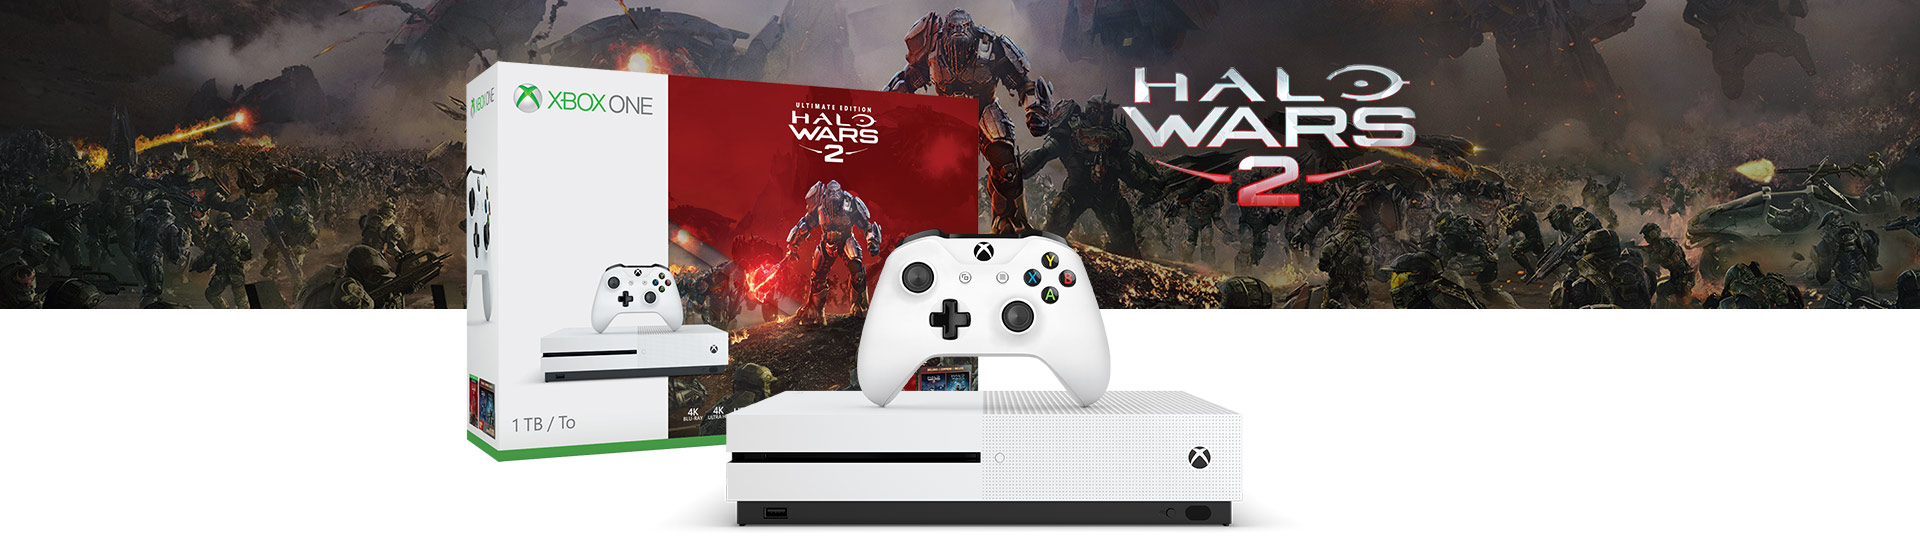 Pack Xbox One S + Halo Wars 2